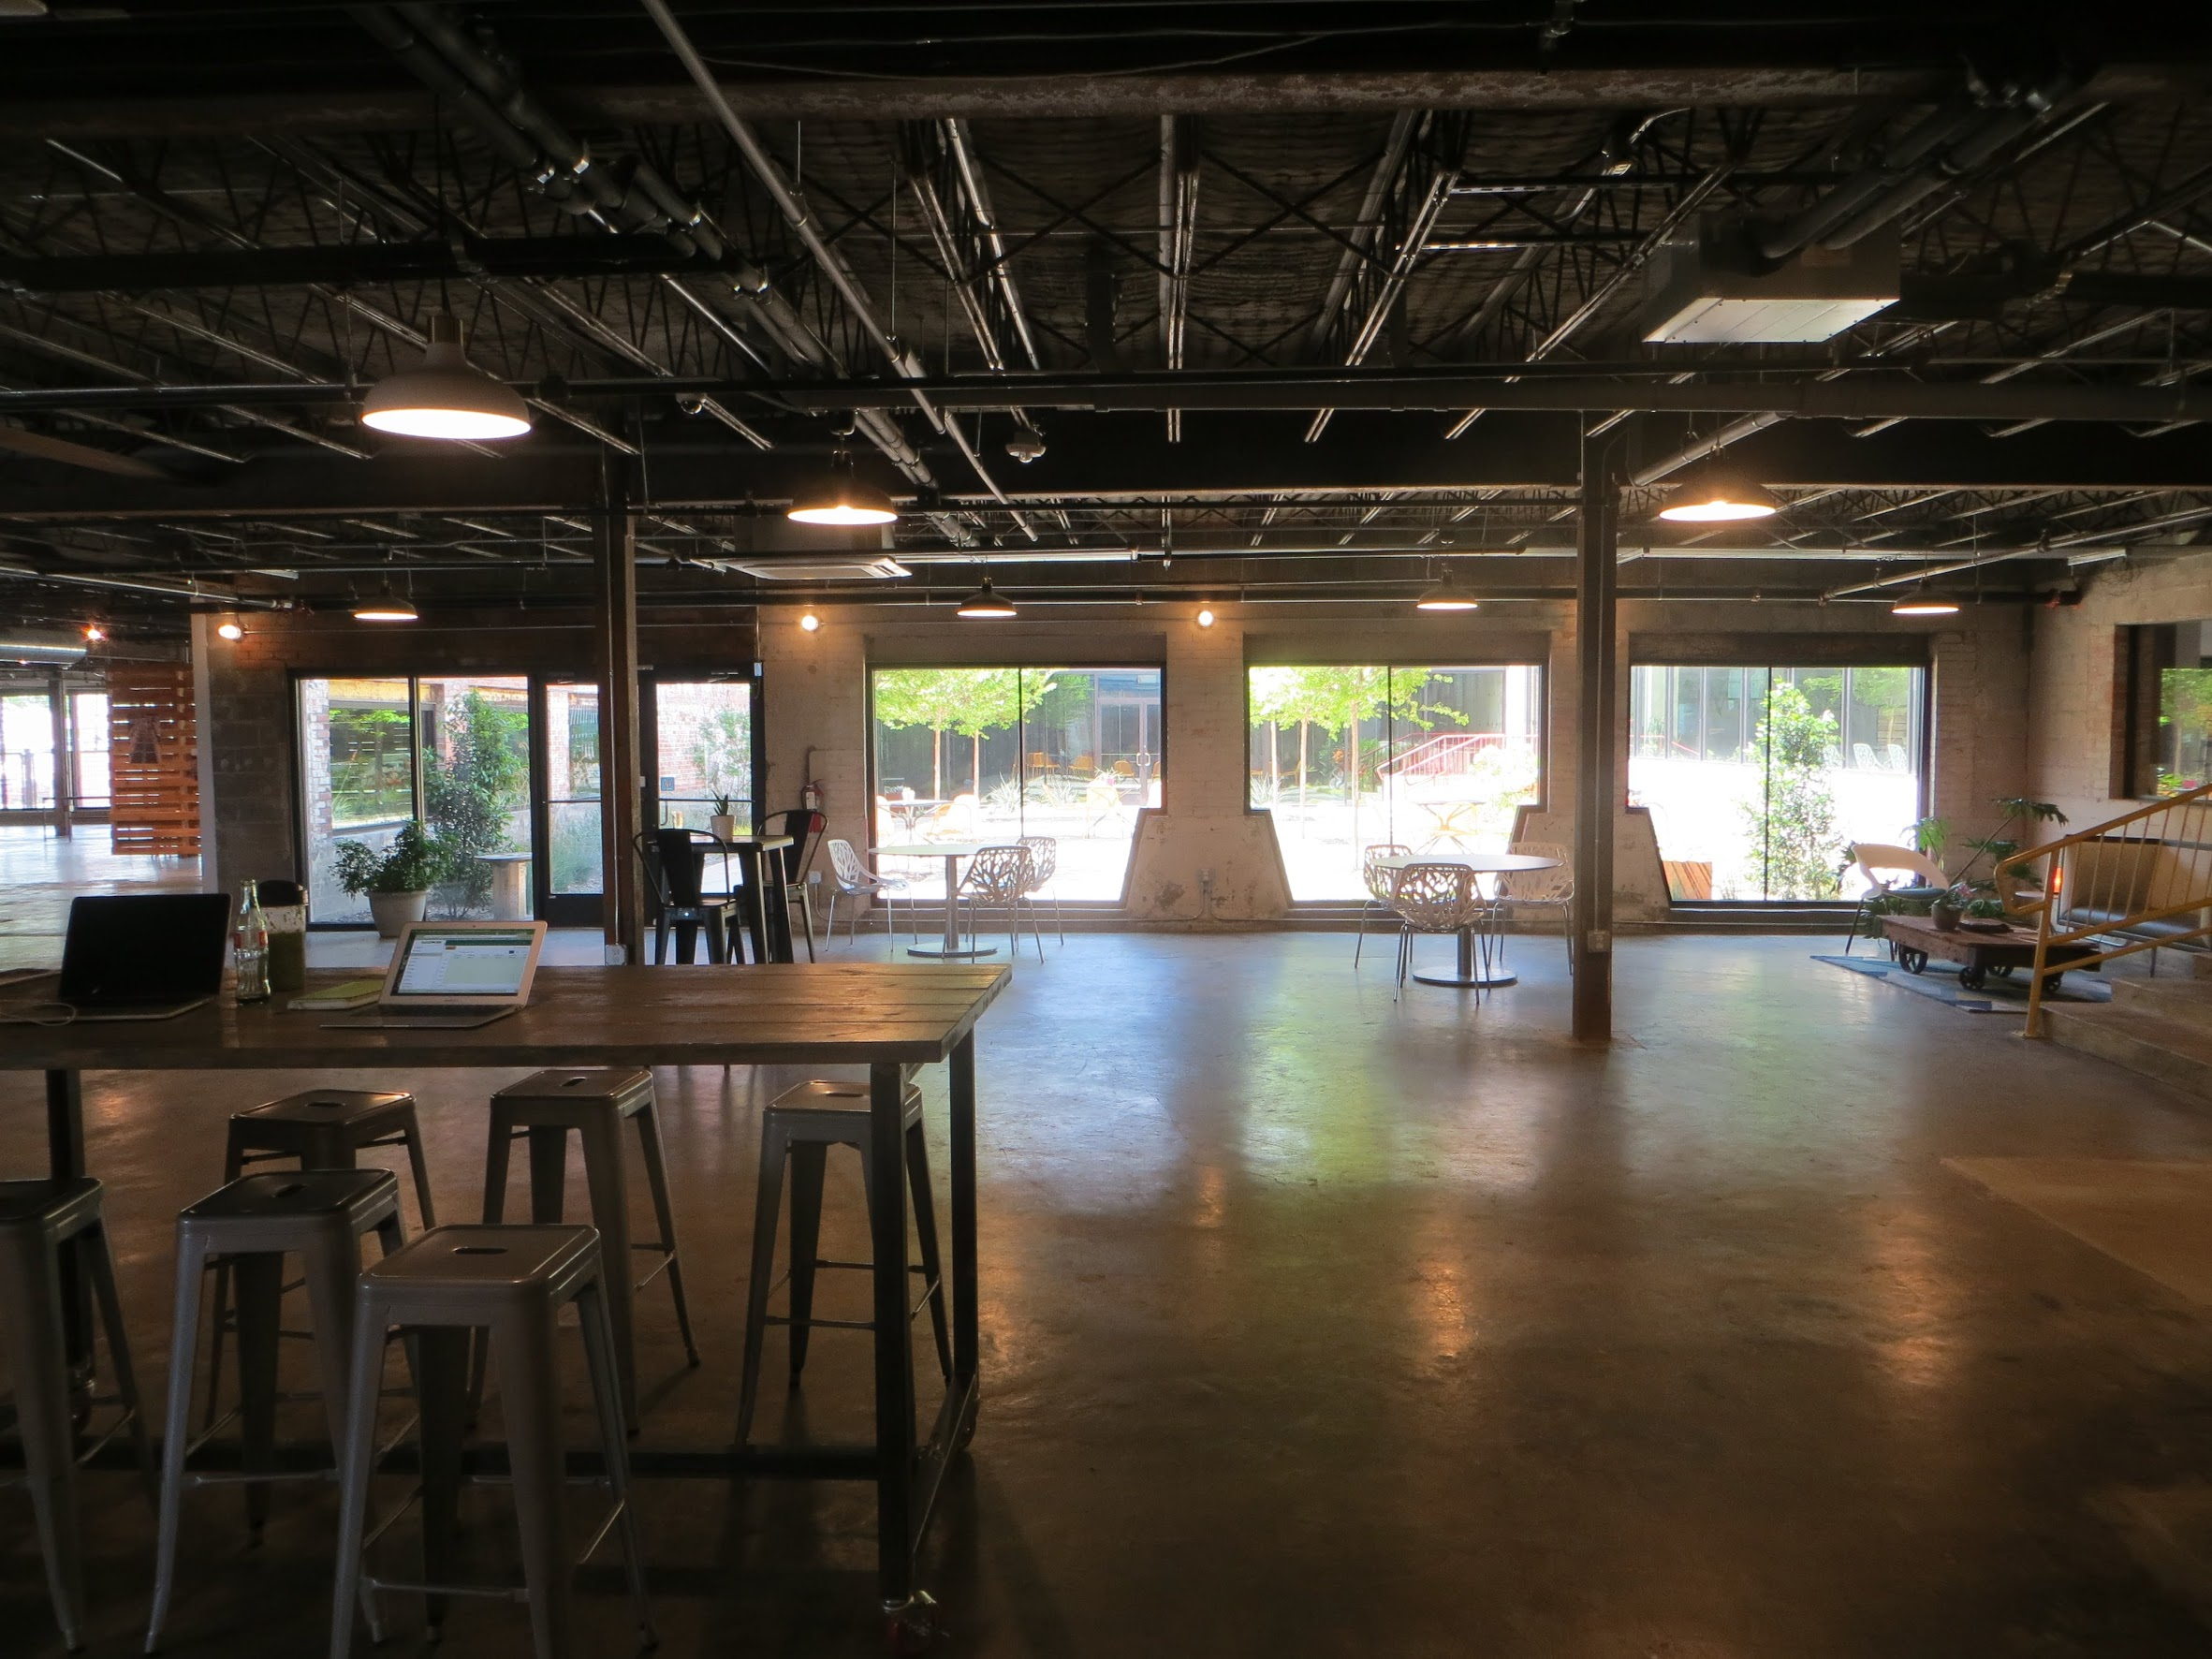 Community common area for eating and mingling. Soon, there will be a coffee shop directly across the courtyard!